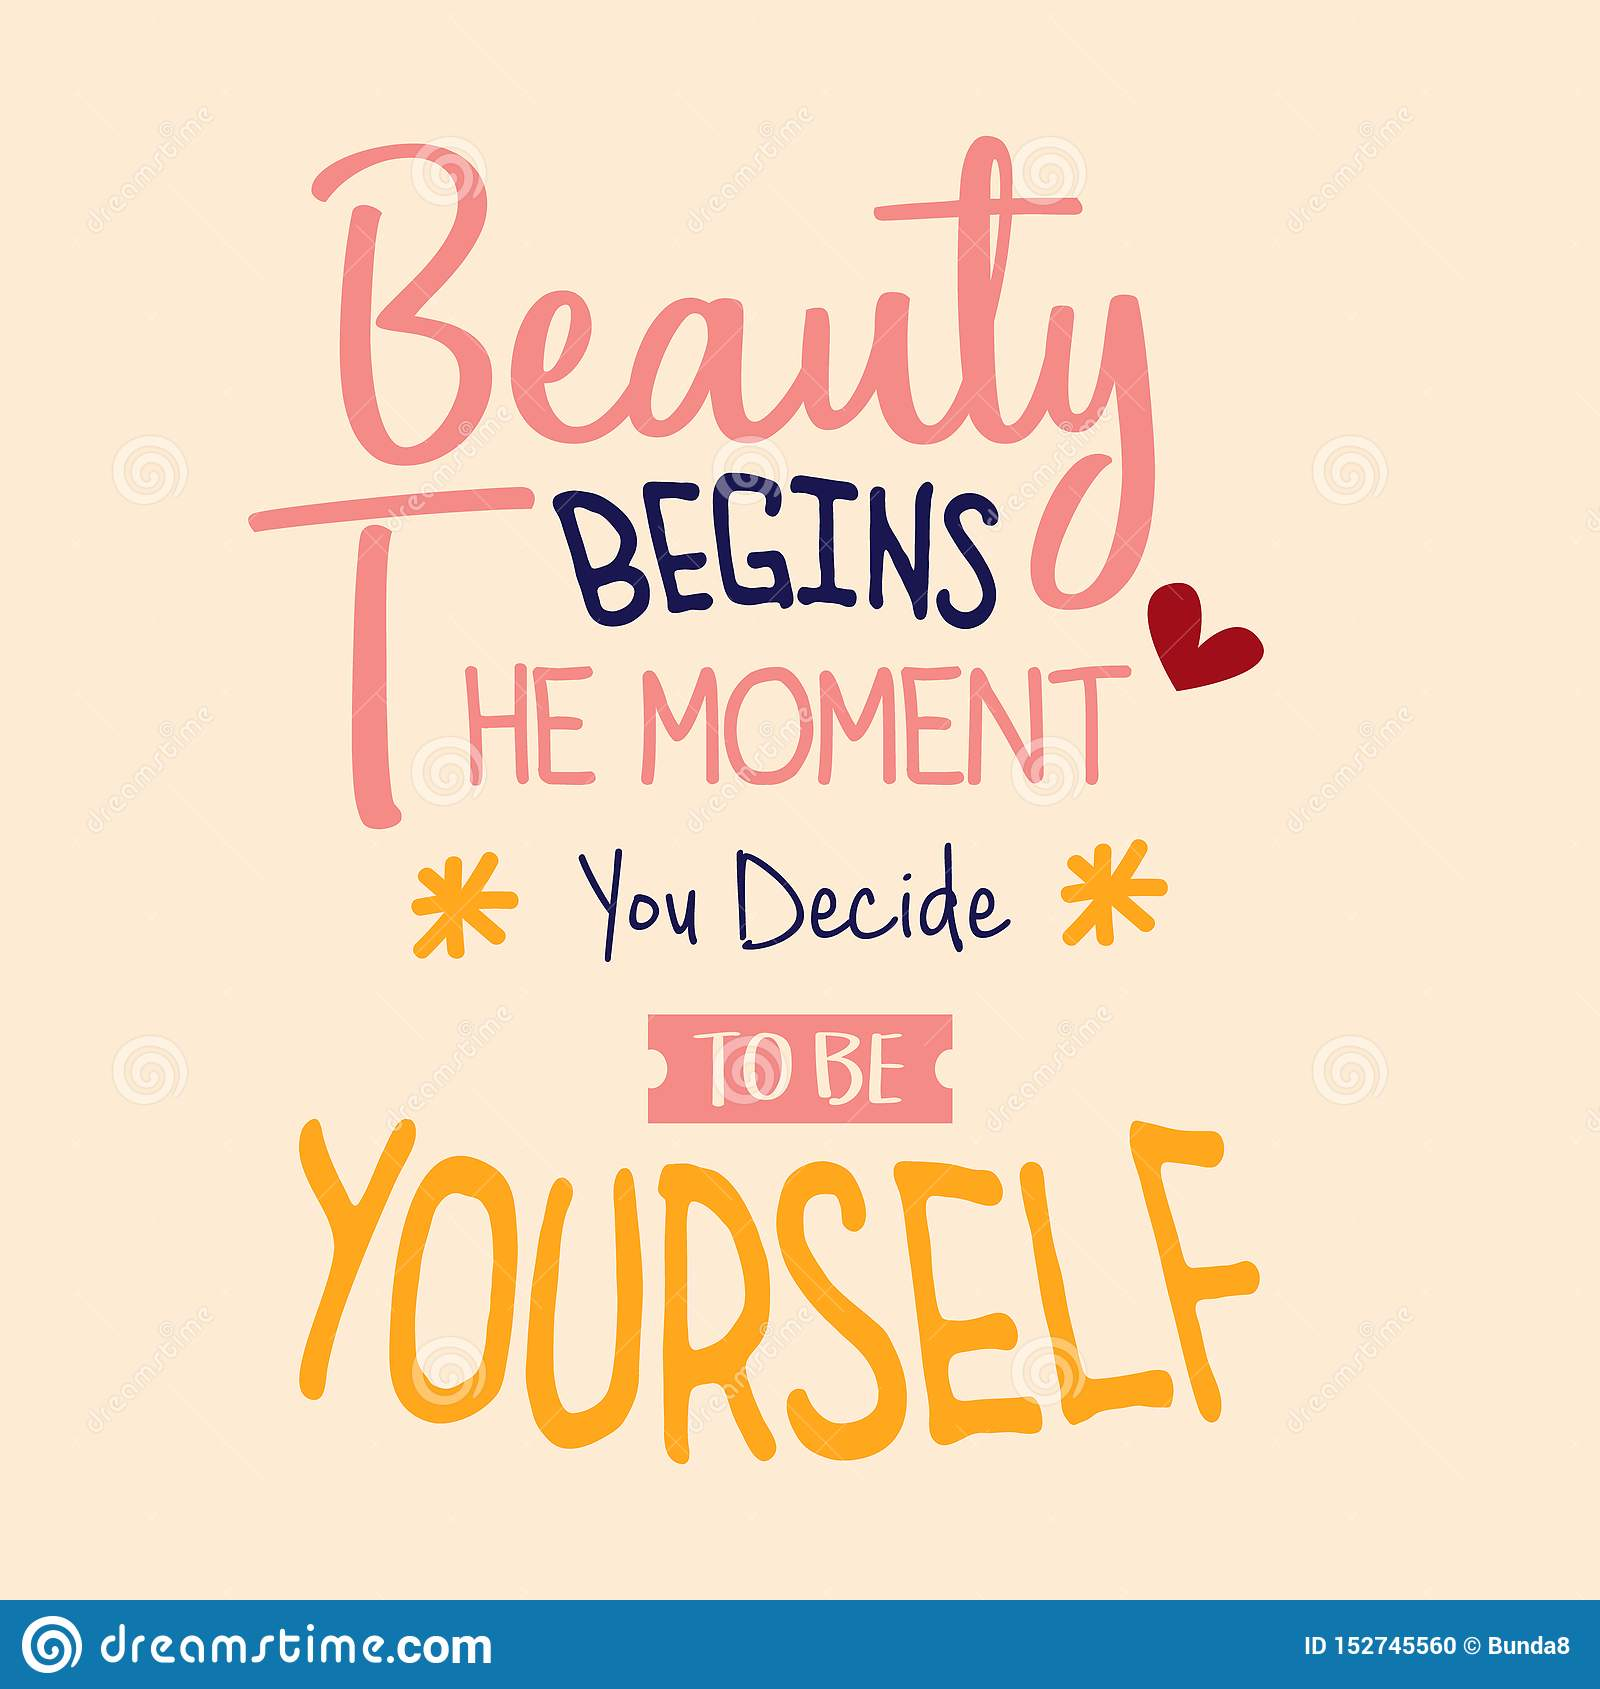 The Beauty Begins The Moment You Decide To Be Yourself Quotes Typography Poster Inspiration Text Word Decoration Stock Vector Illustration Of Banner Life 152745560